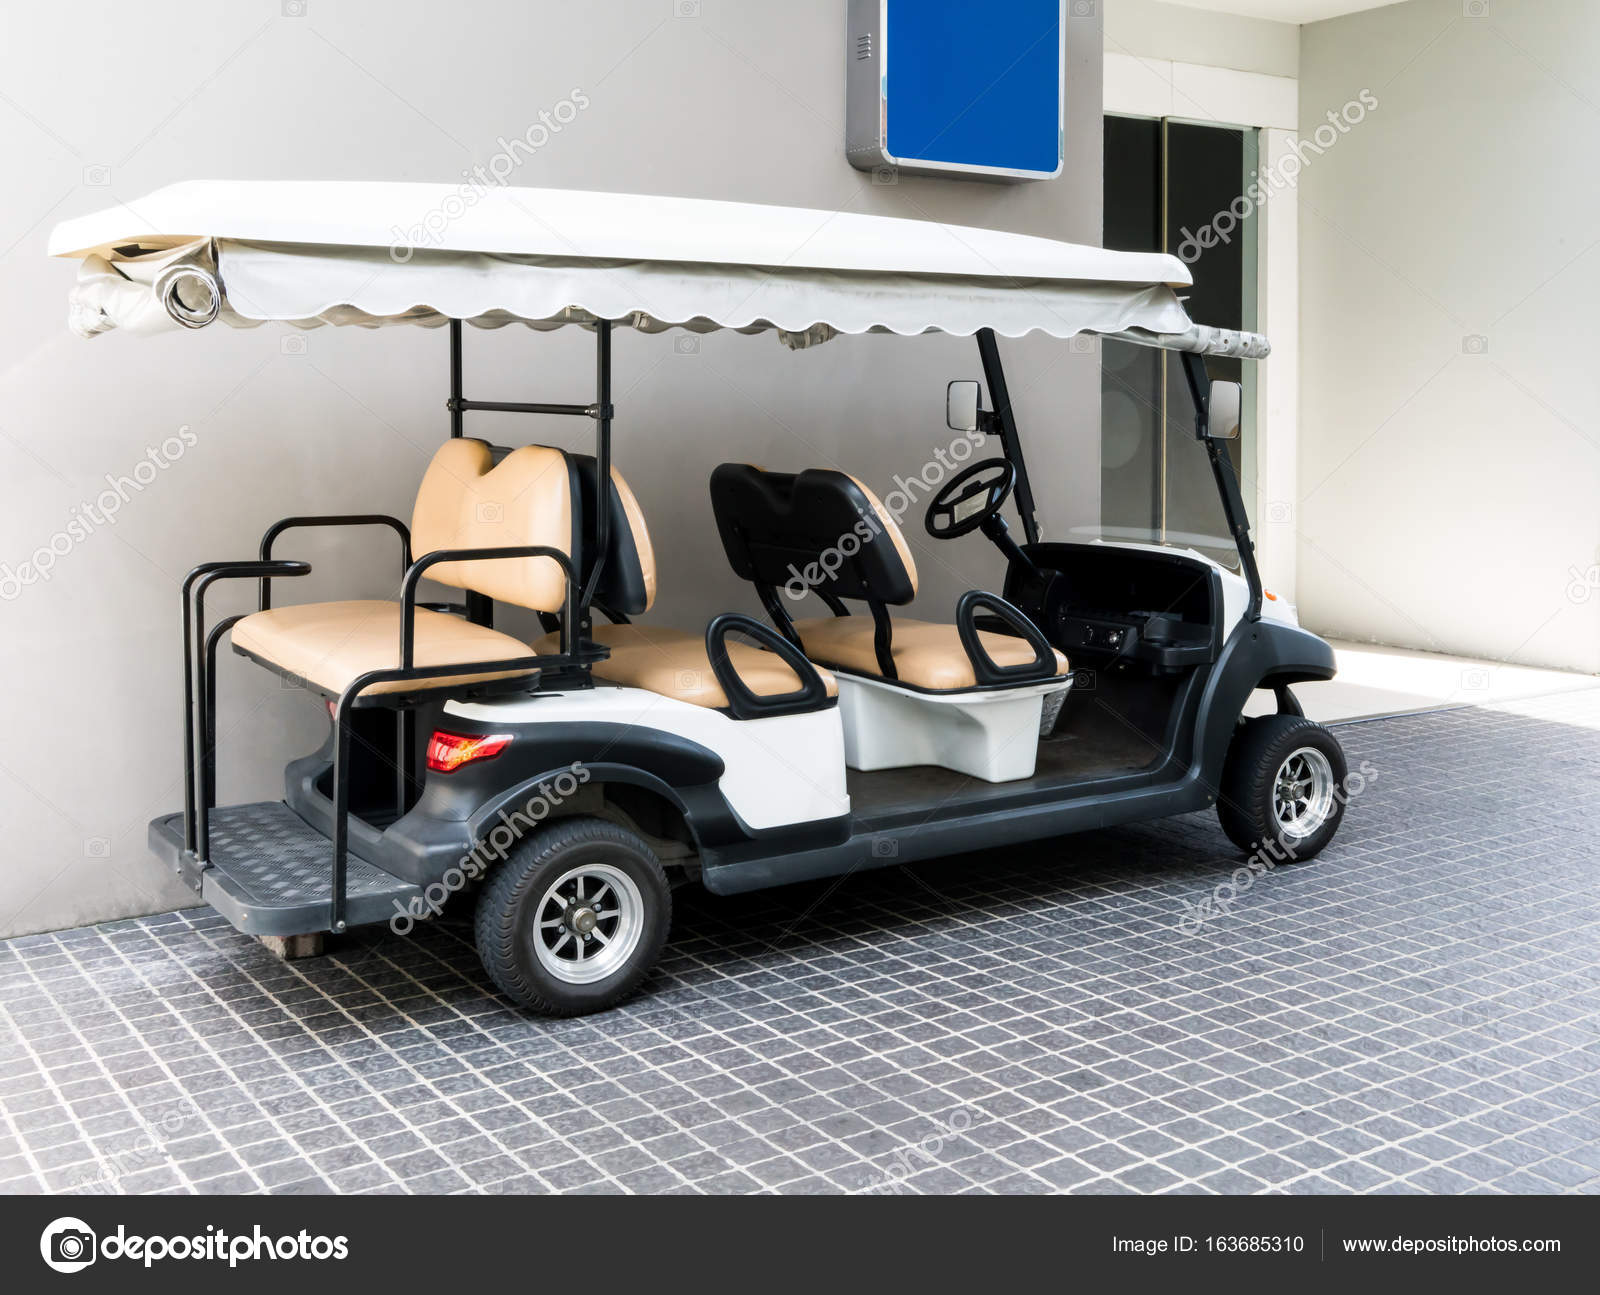 White golf cart with back seats in the public building — Stock Photo on golf cart accessories rear seats, golf cart front bucket seats, ez go golf cart seats, ezgo golf cart custom seats, ezgo golf cart replacement seats, cheap gas golf carts,